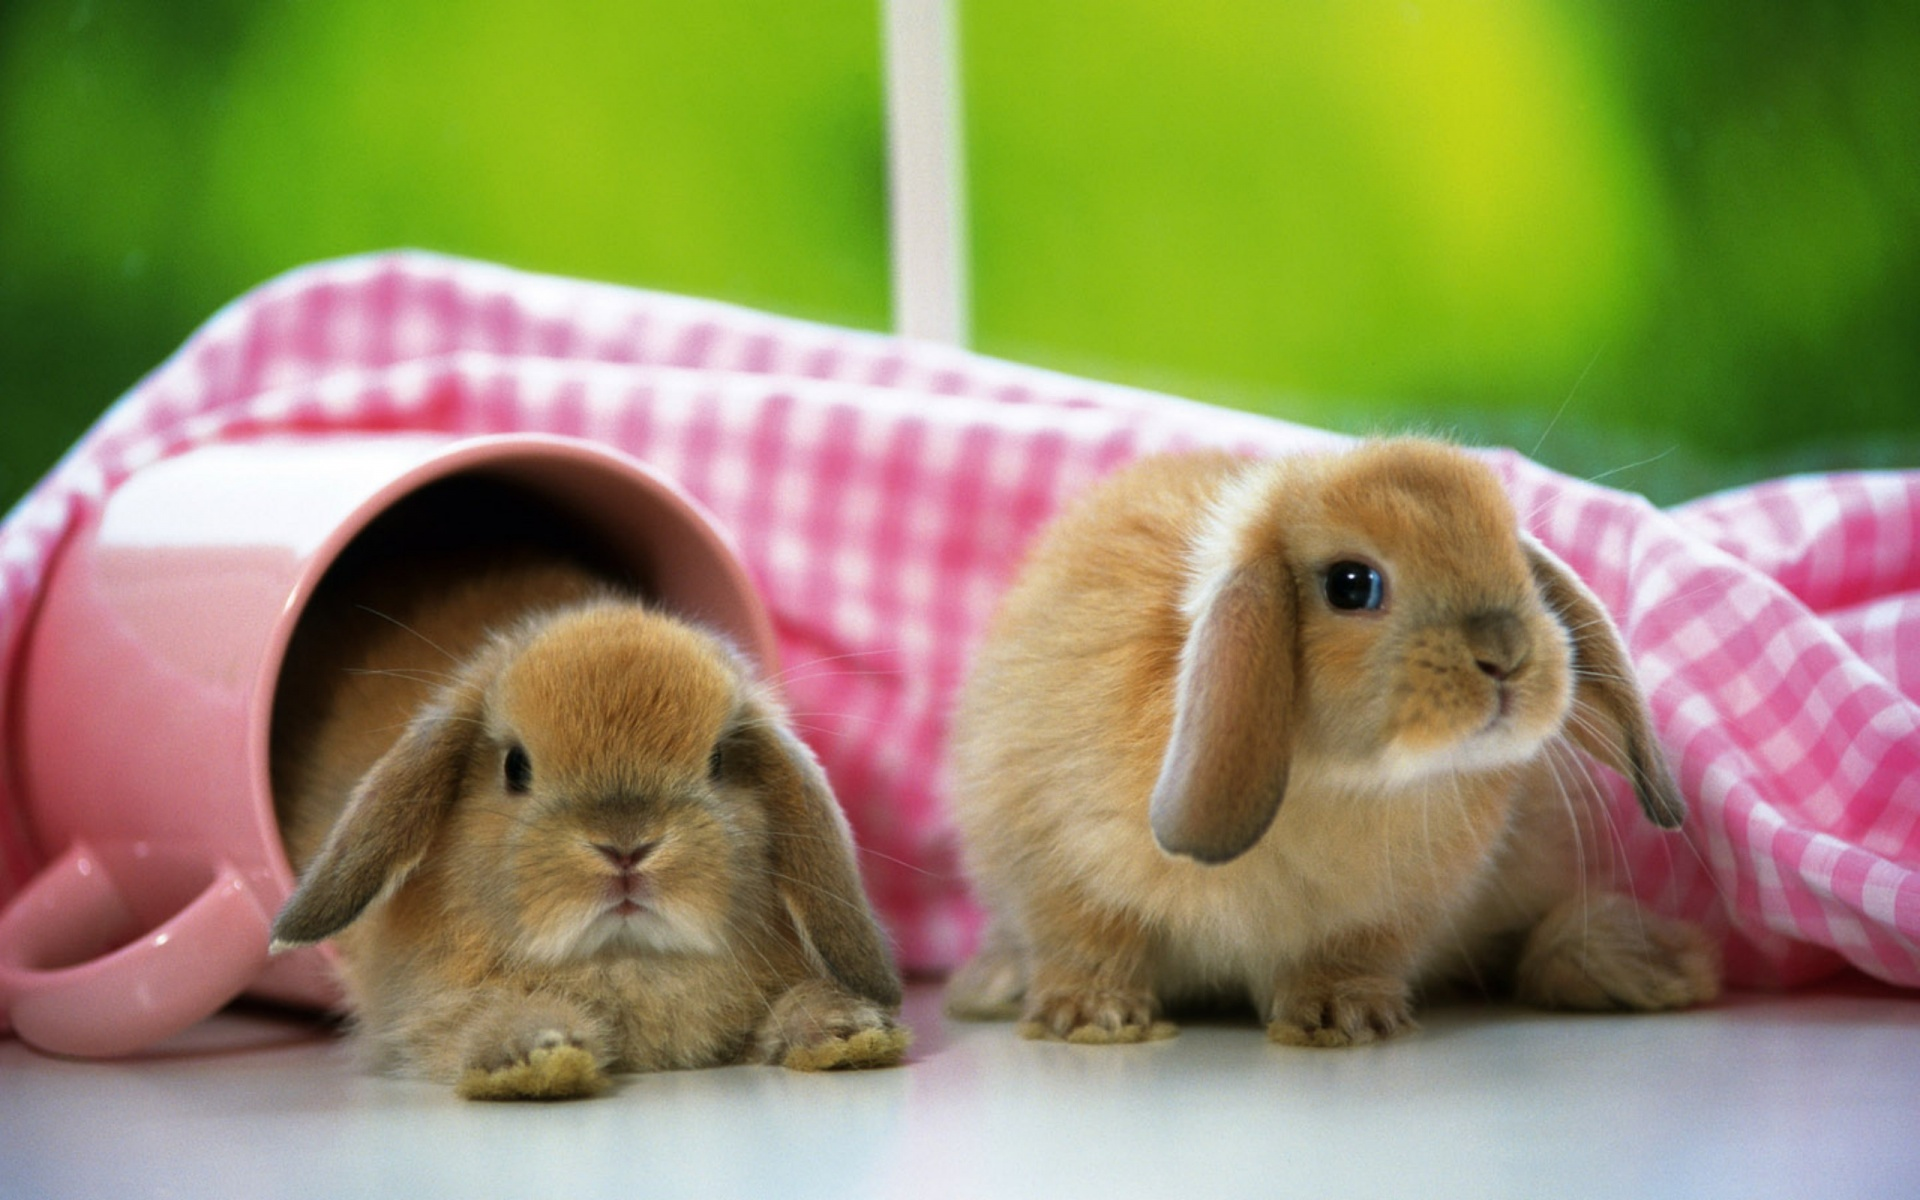 Two Brown Bunny Wallpaper PC Wallpaper